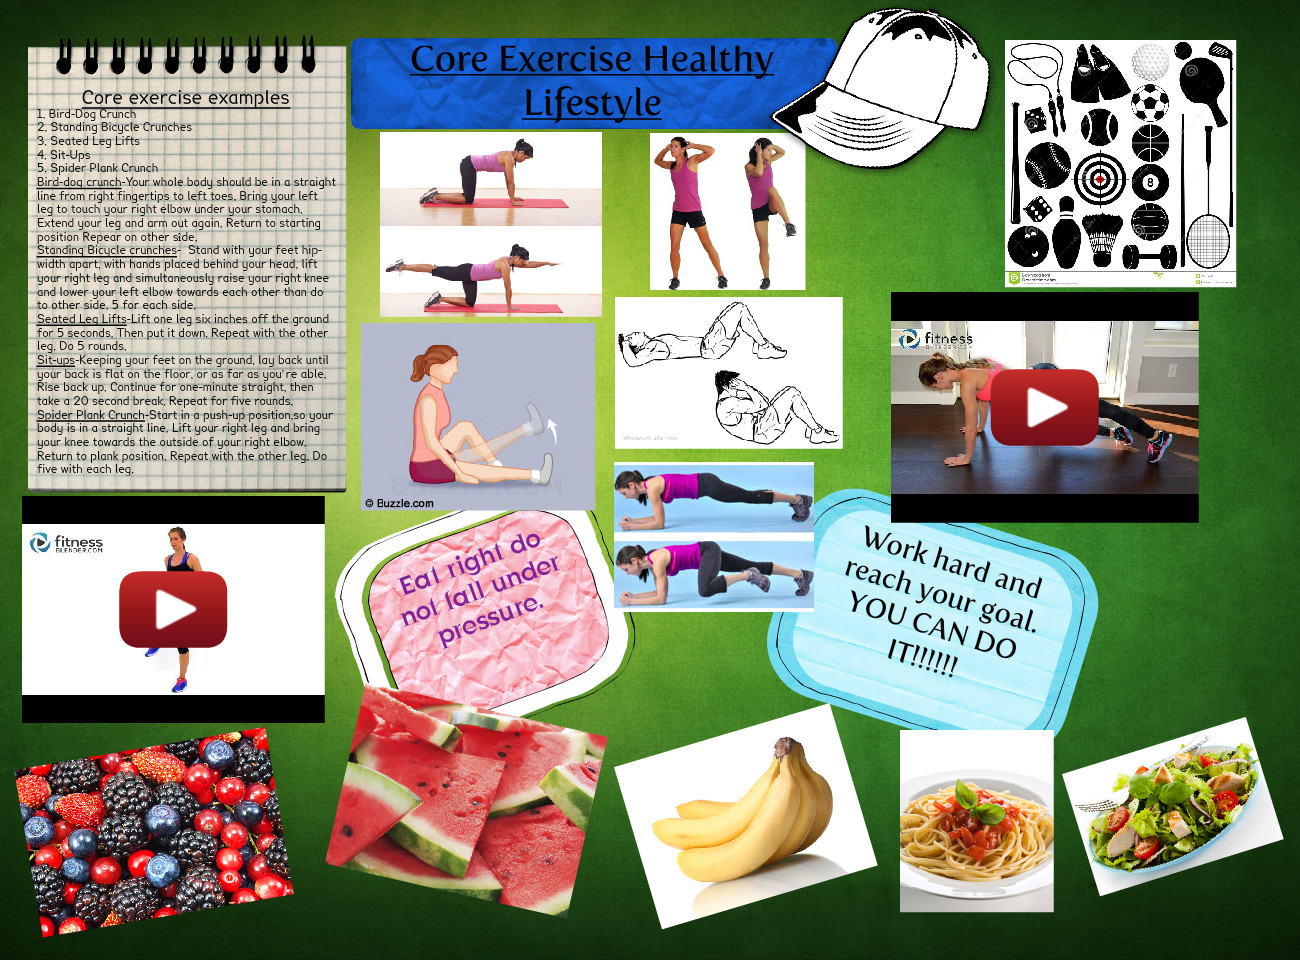 Core Exercise Healthy Lifestyle